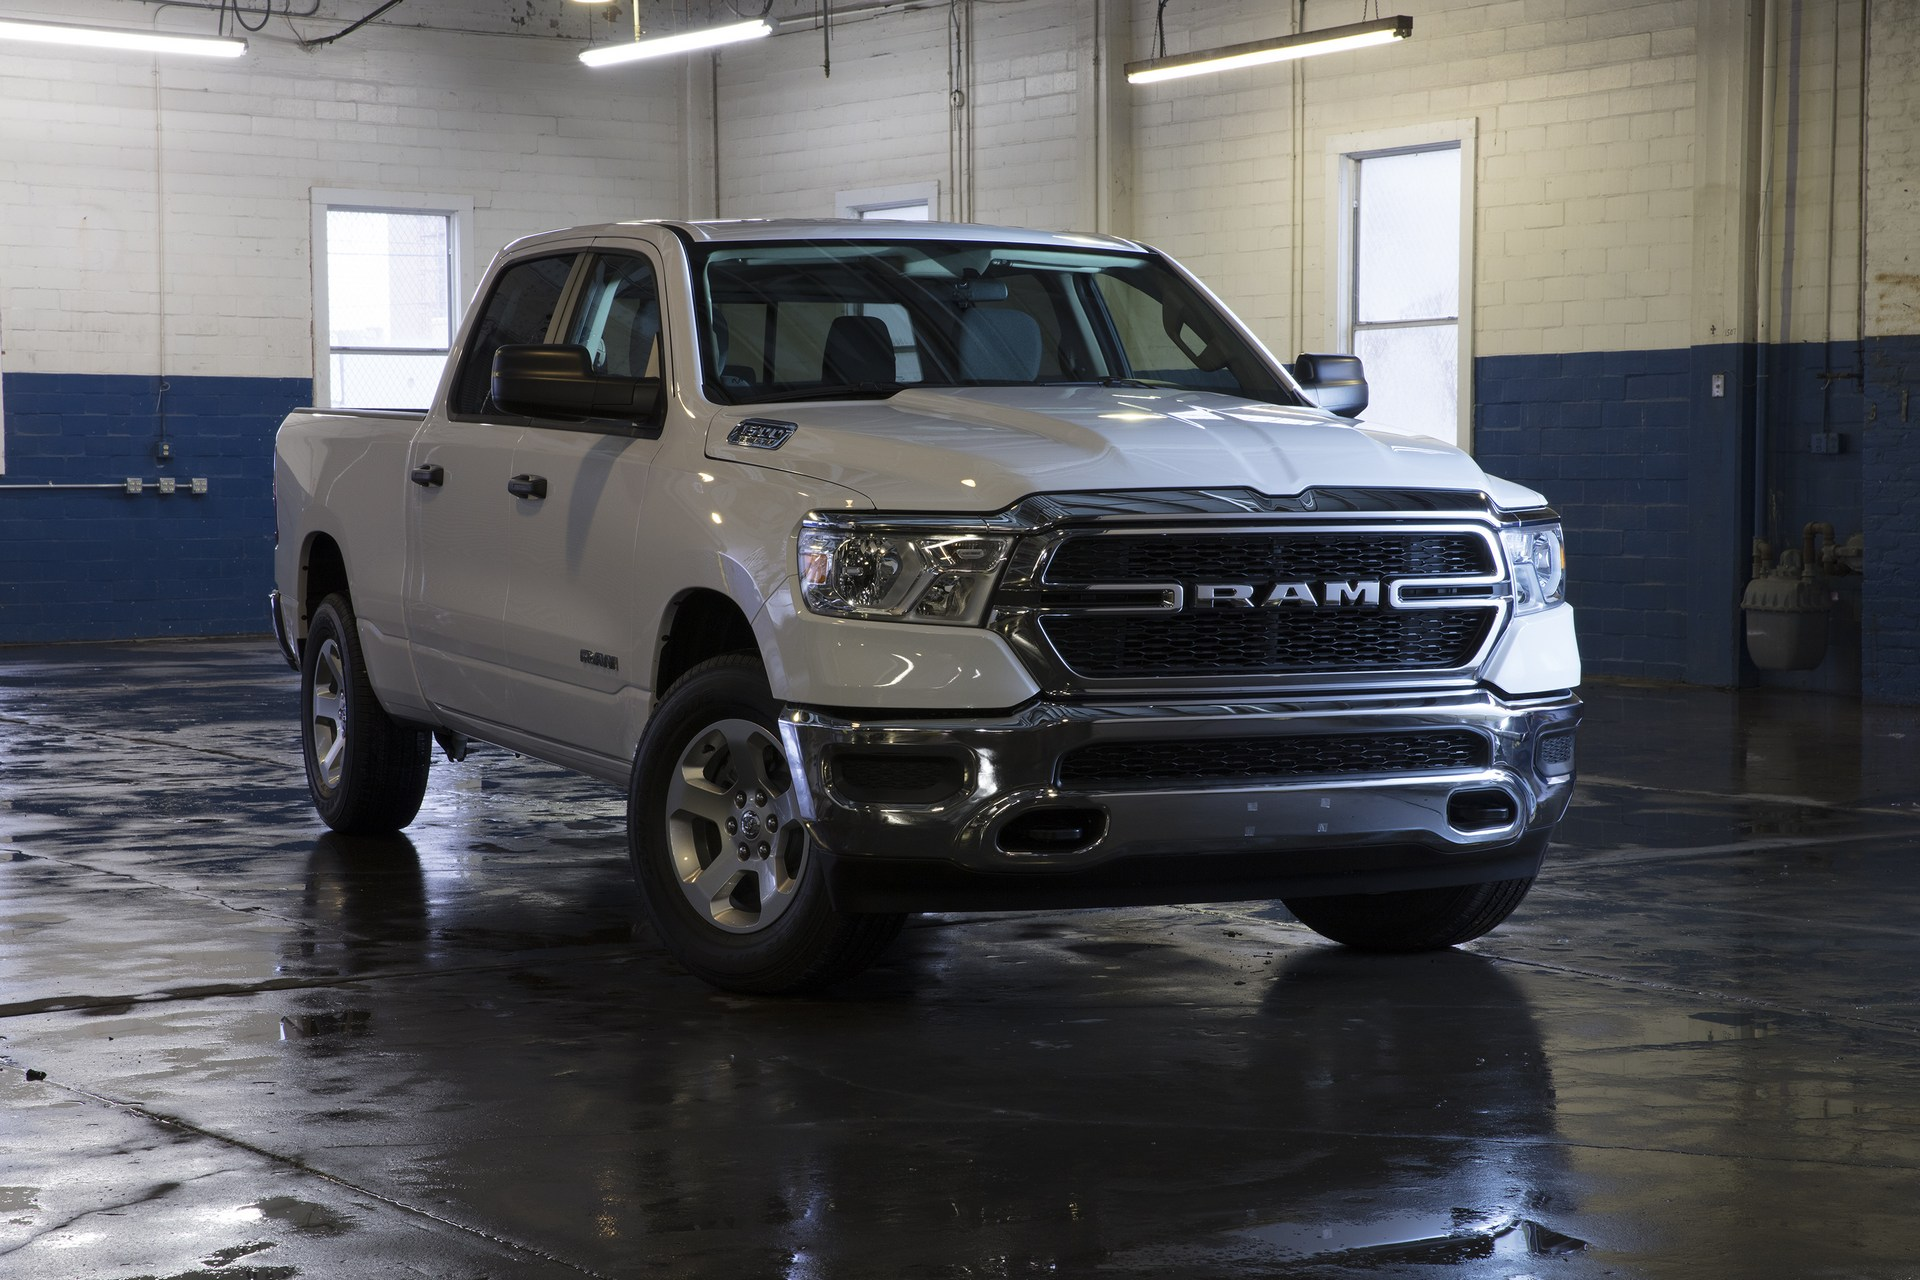 Least Expensive 2019 Ram 1500 Priced At $33,340, Because ...